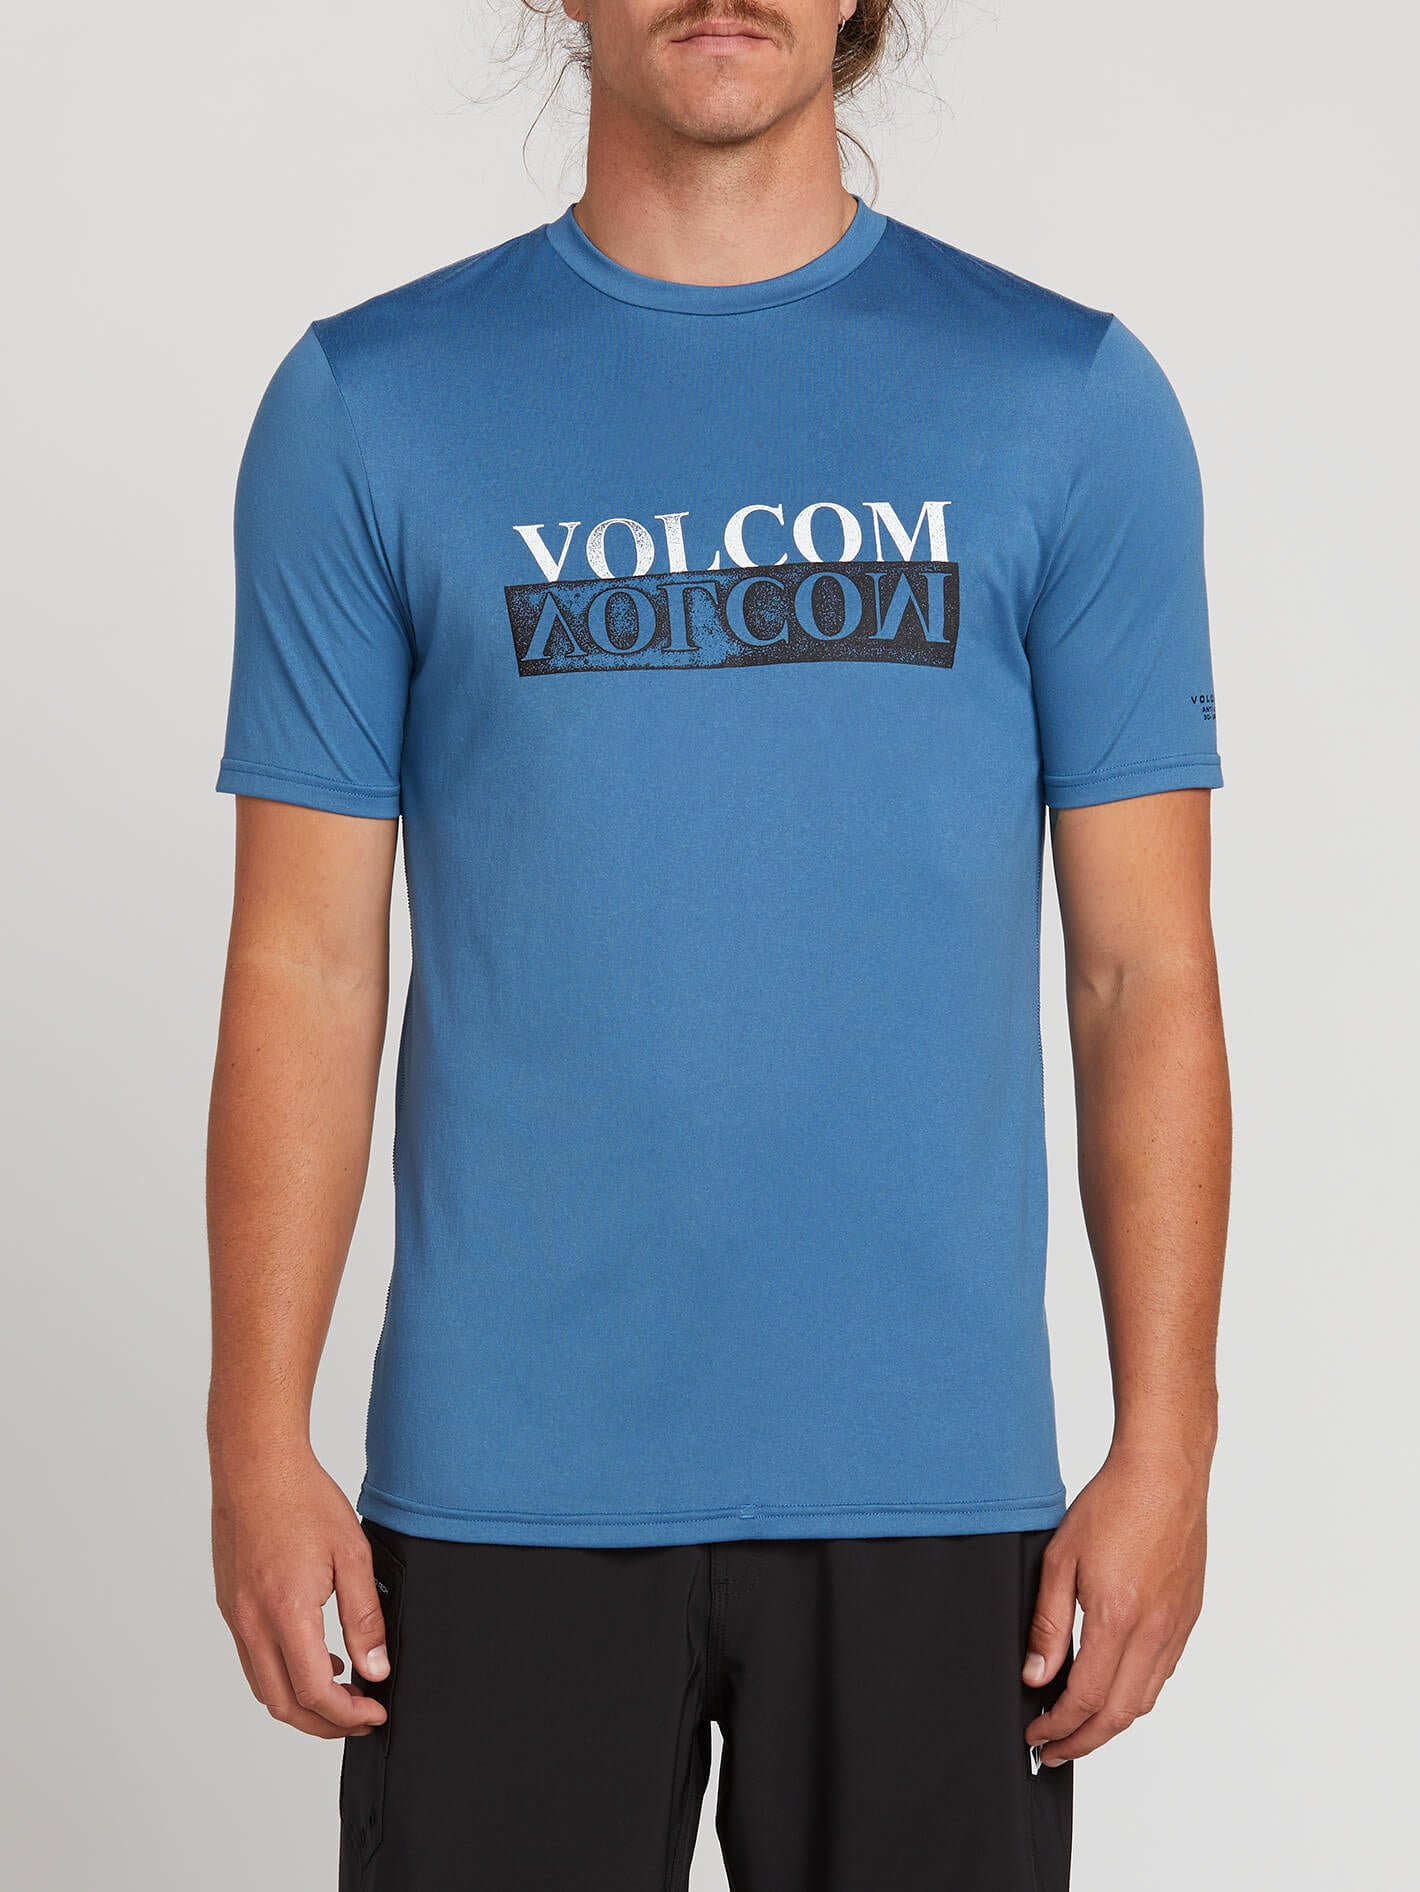 Volcom Effect Short Sleeve Rashguard - Royal - S